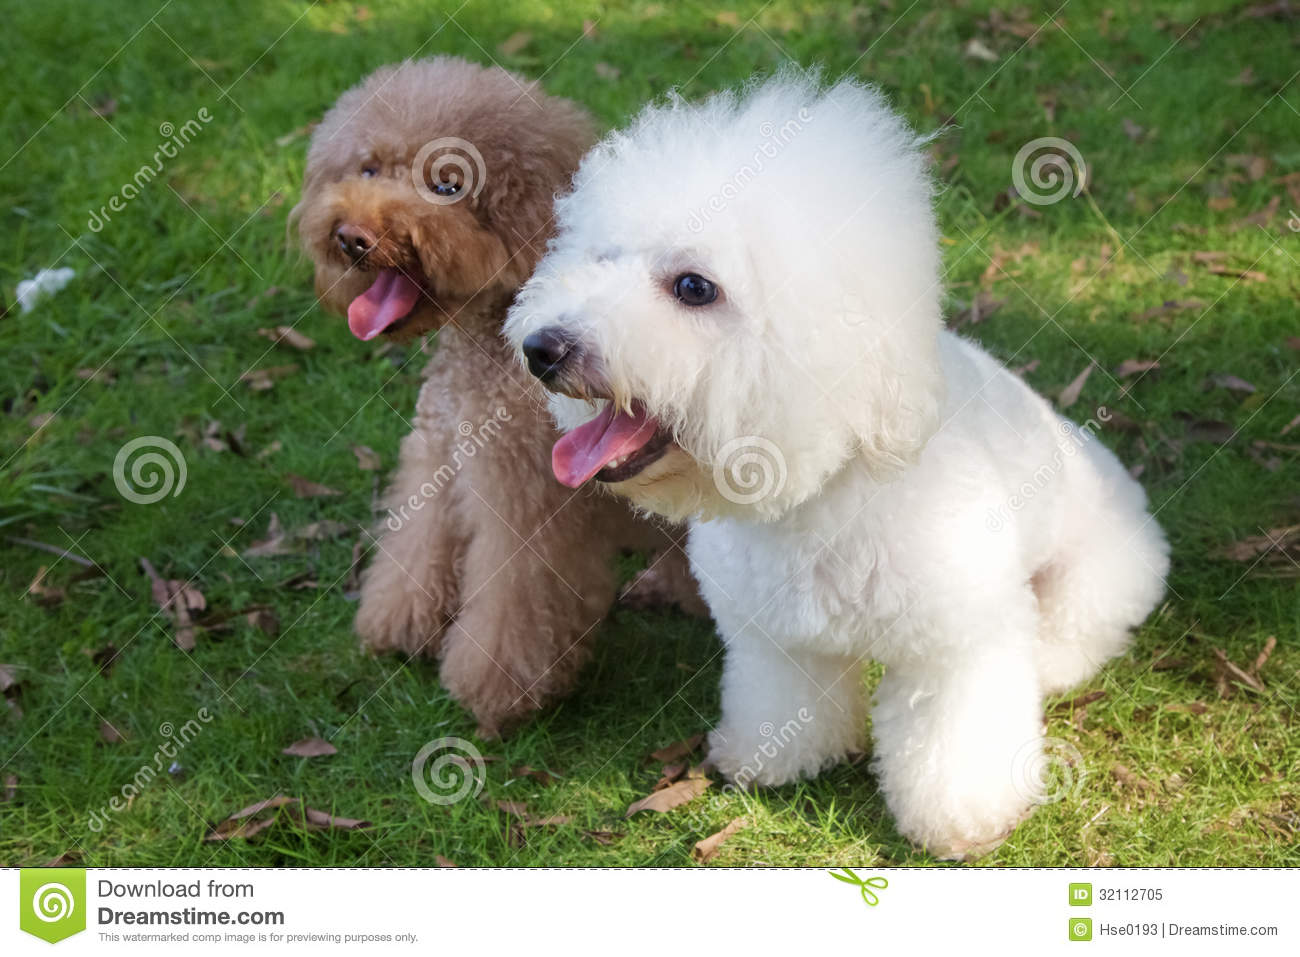 White Bichon Frise And Brown Miniature Poodle Stock Image